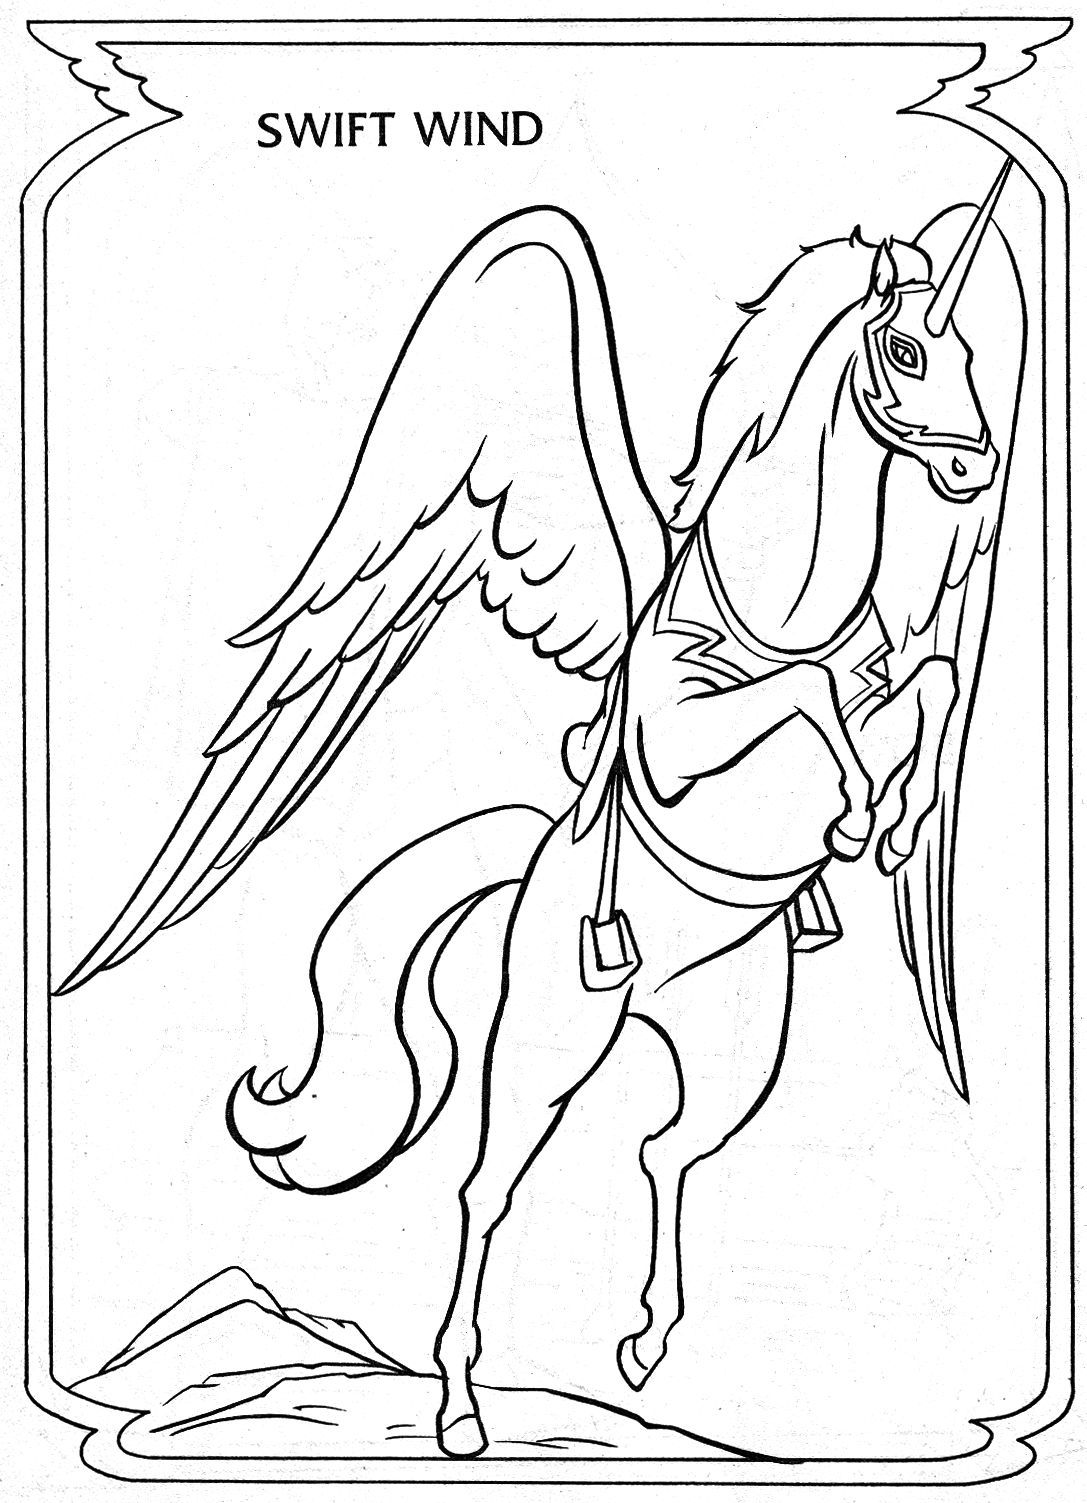 He Man She Ra Coloring Pages She Ra Coloring Pages